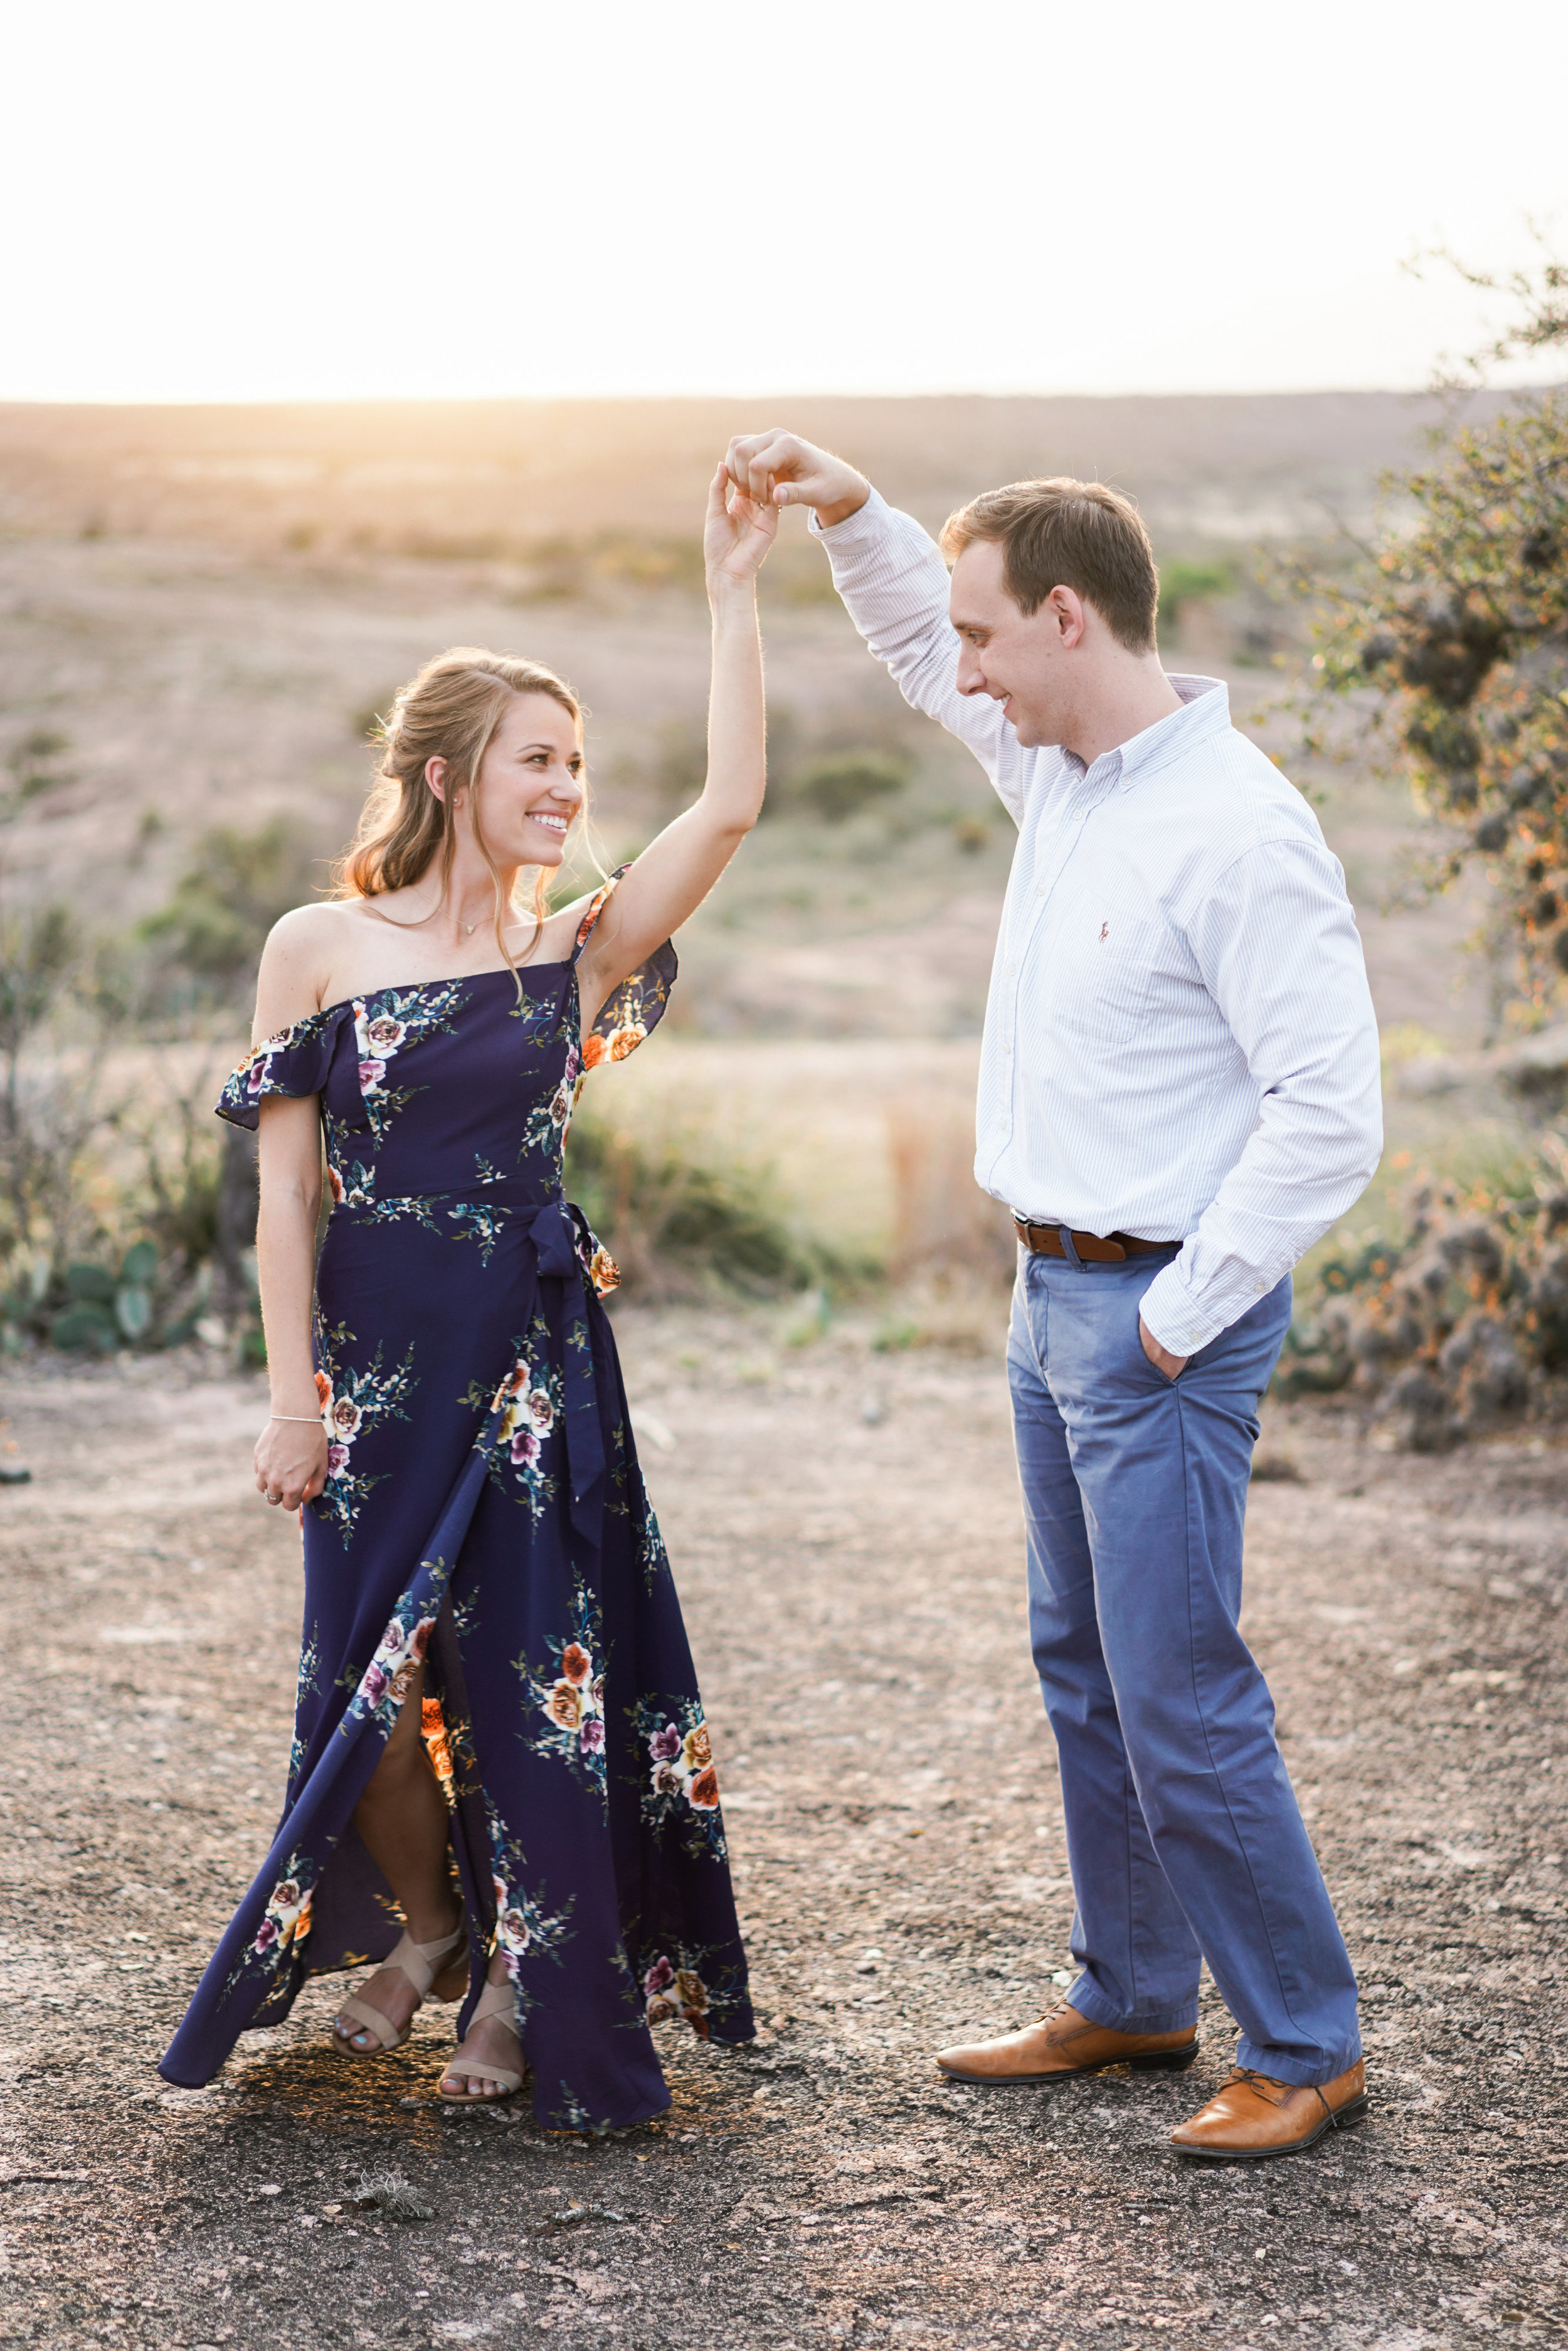 Flowy dresses look great for engagement sessions!